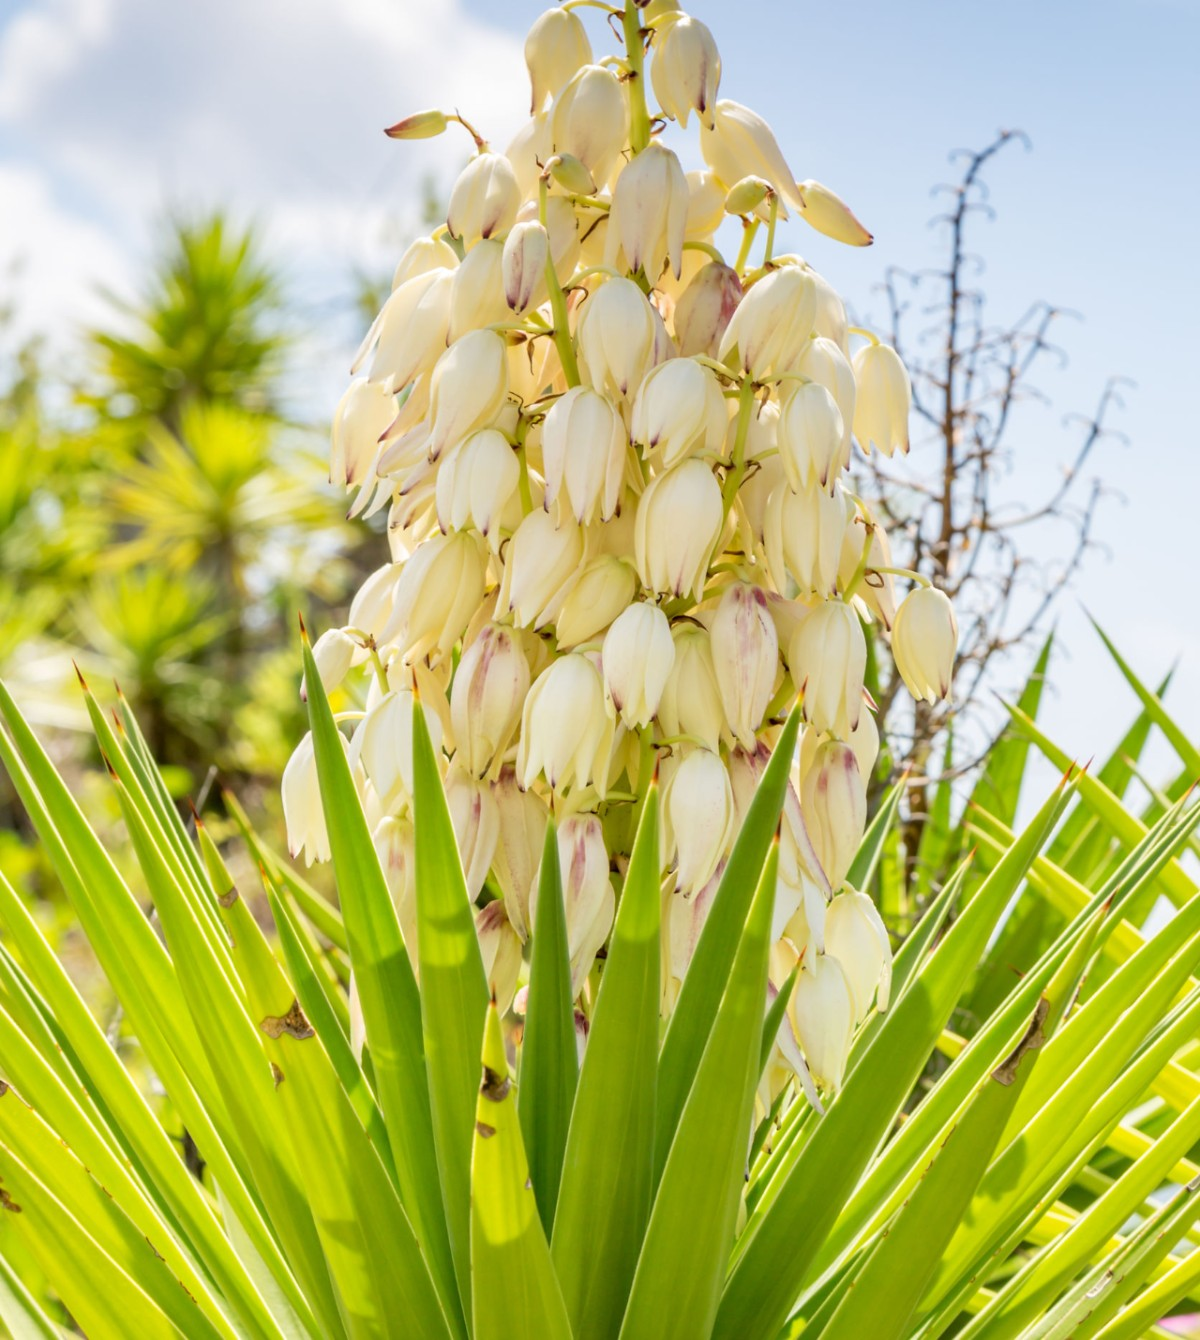 The yucca plant is an unusual drought-tolerant shrub that adds interest to any garden area.